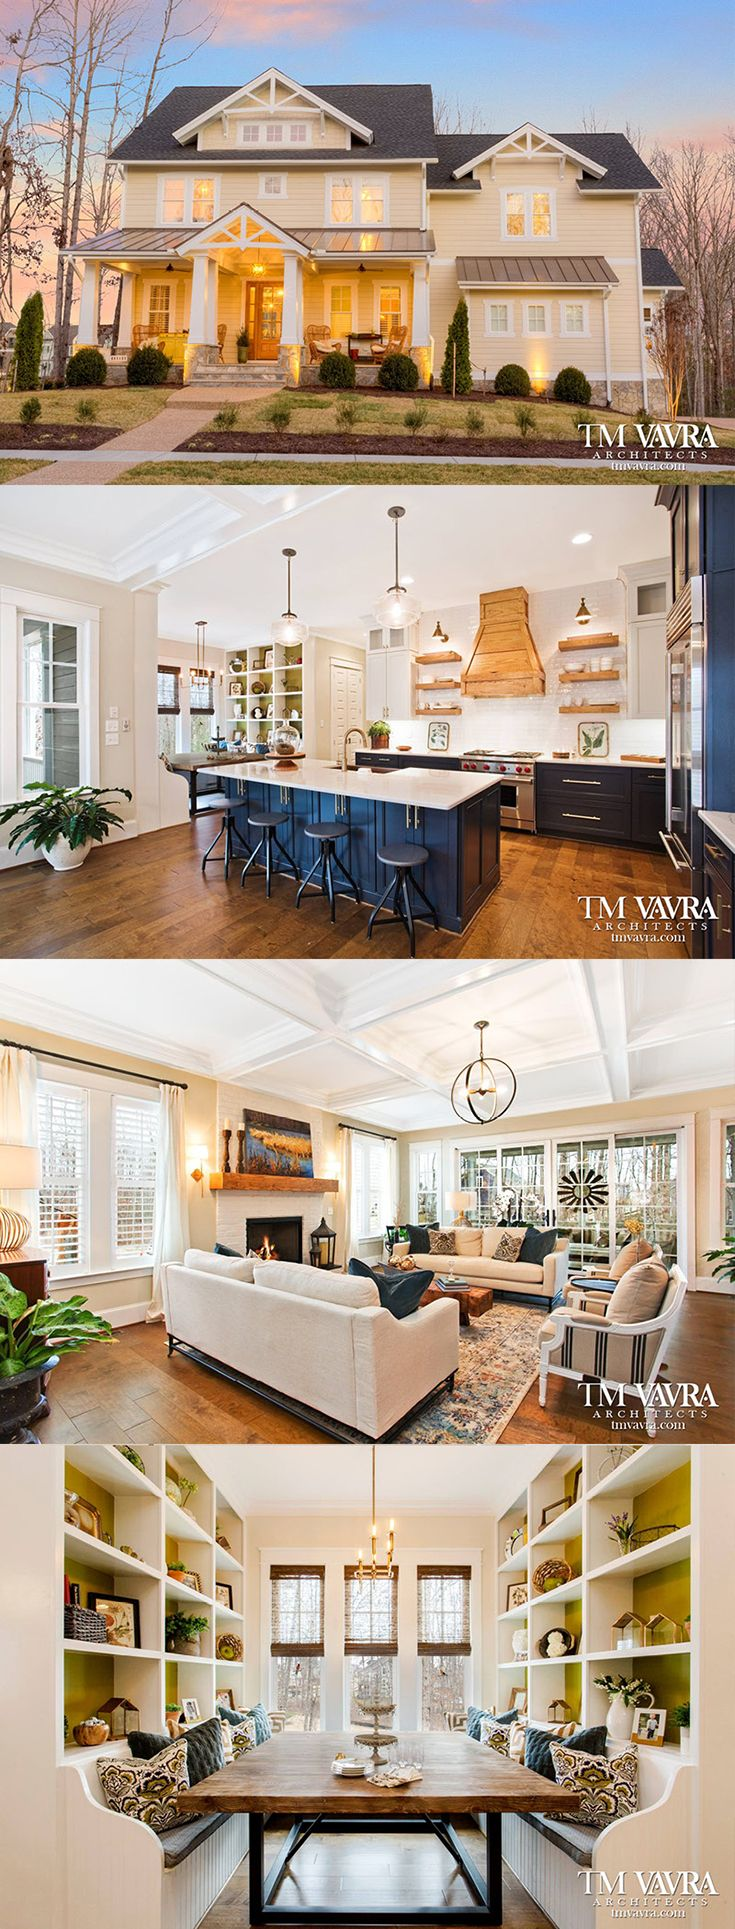 House design room - Best 25 Large House Plans Ideas On Pinterest Family House Plans House Floor Plans And Ranch House Plans